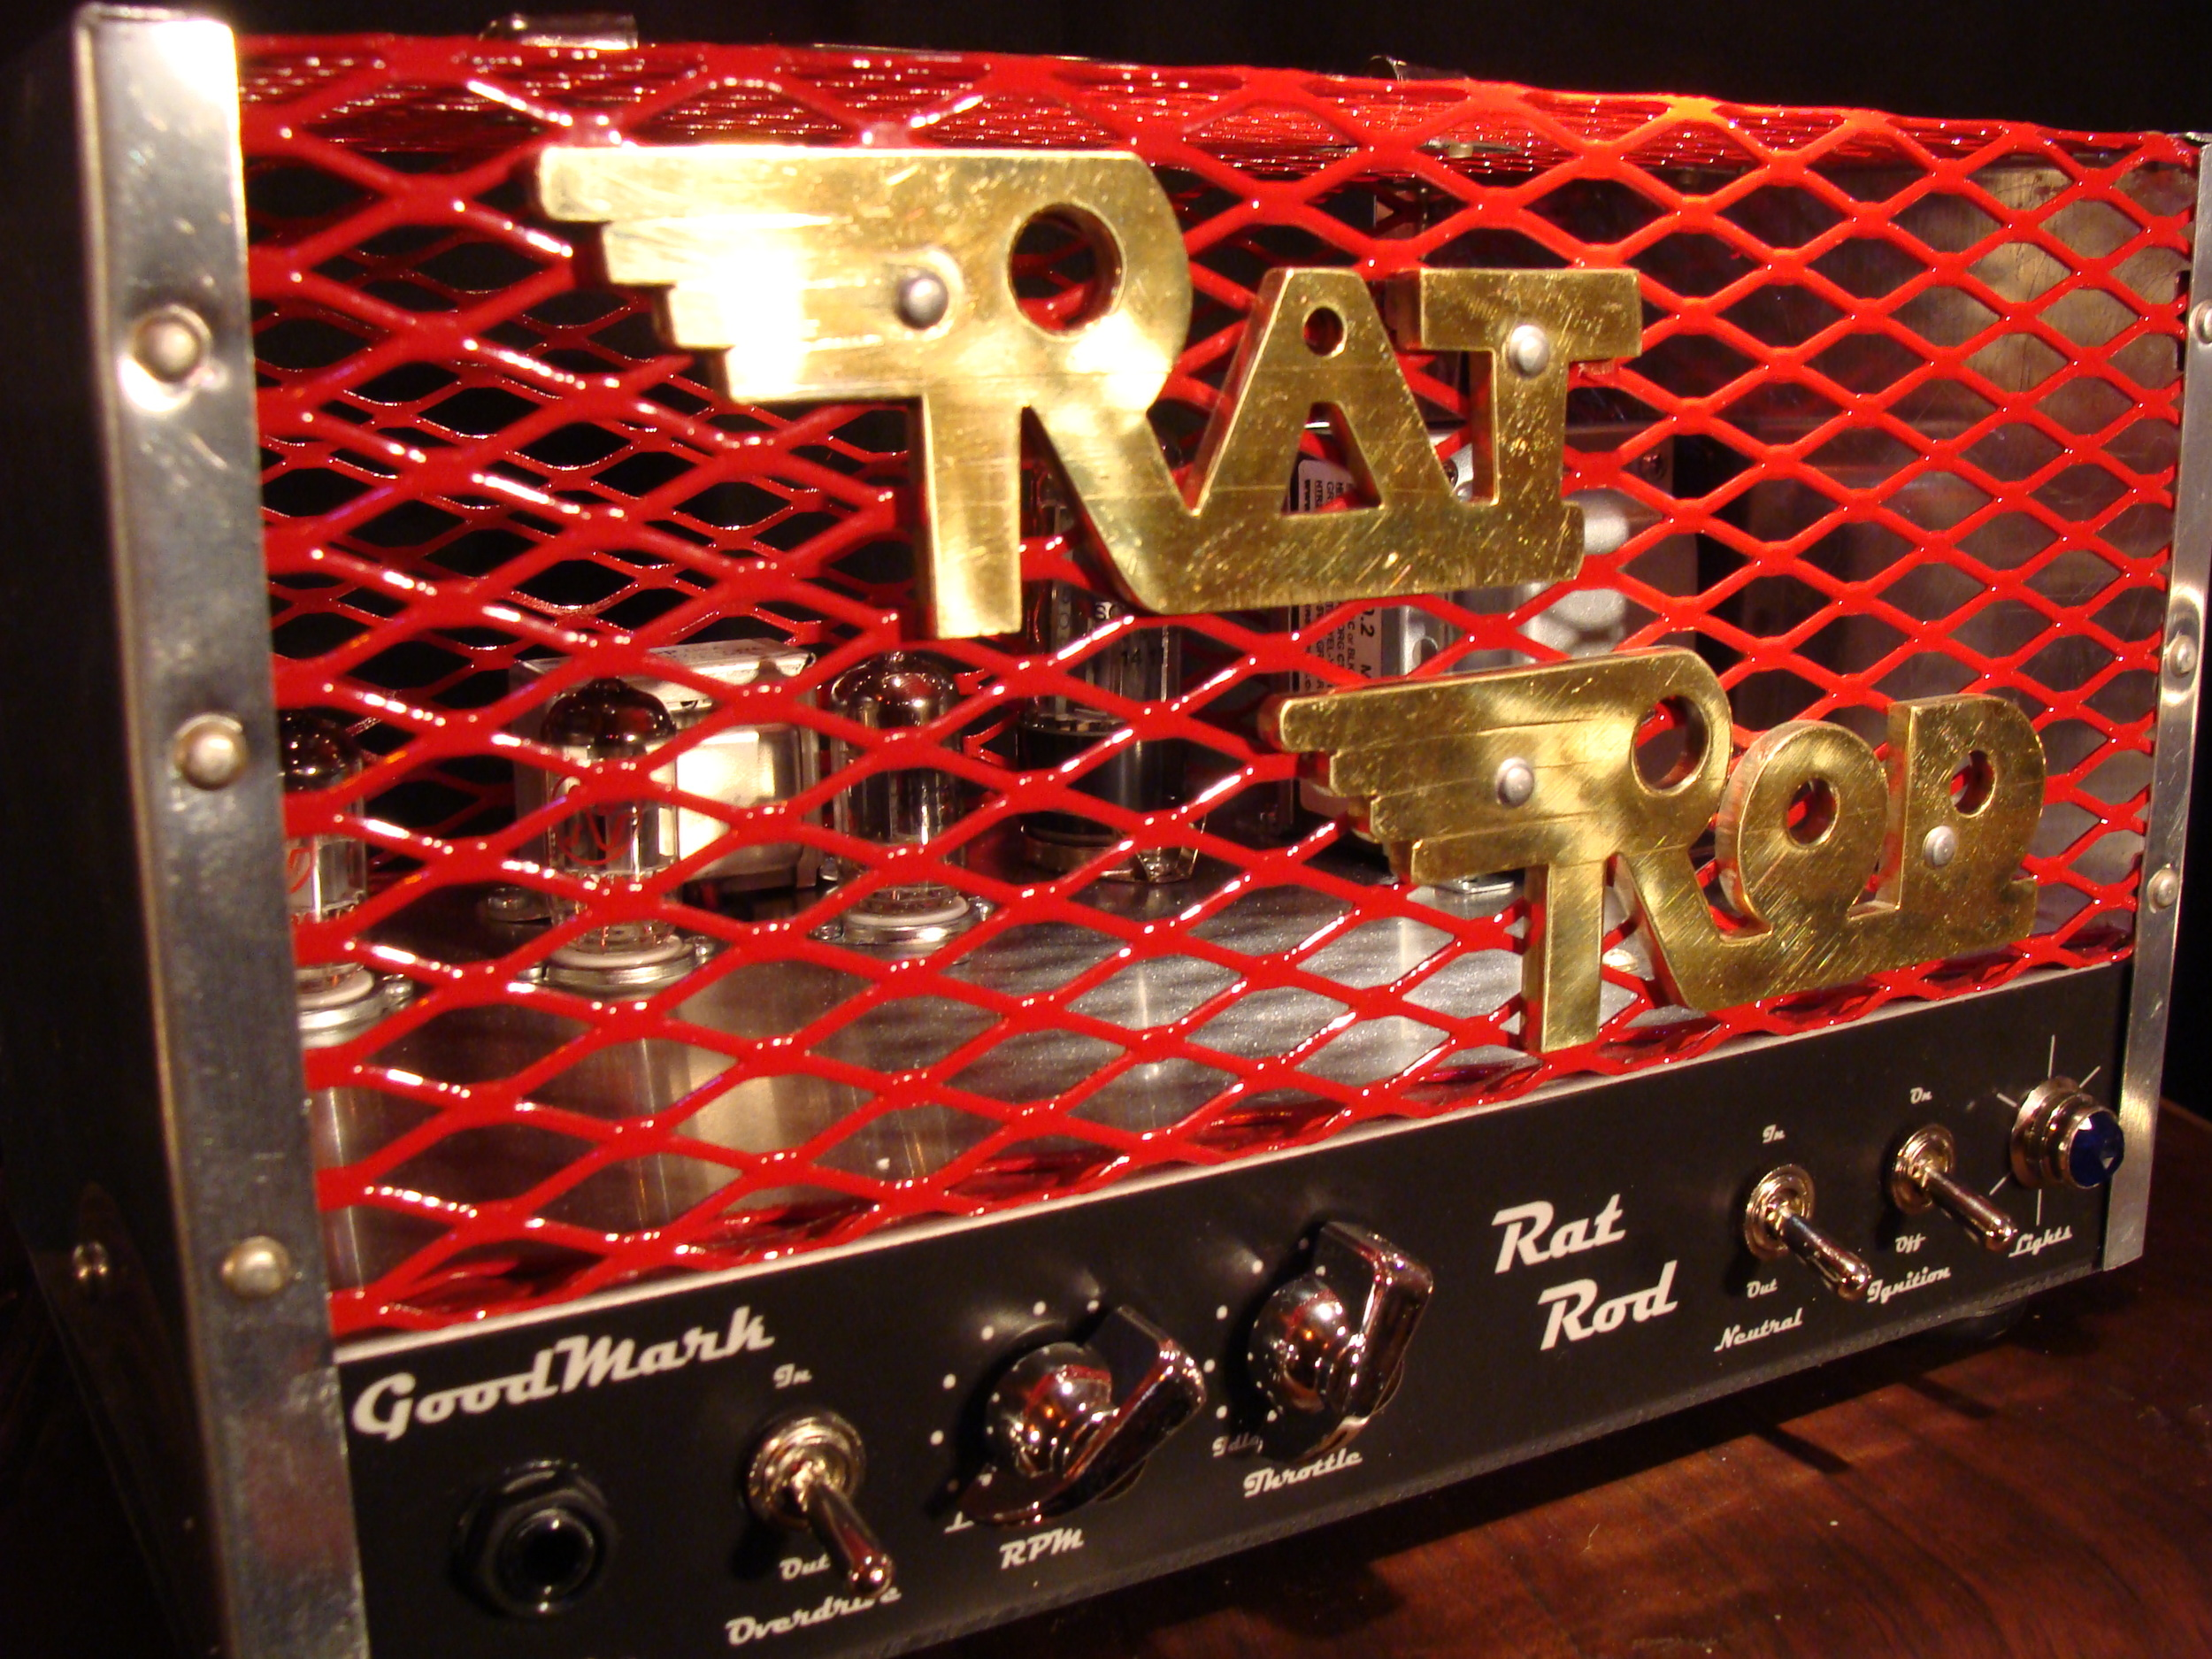 This Rat Rod is no longer available. It is now owned by Bruce Adolf. https://www.facebook.com/bruce.adolph Be looking for his review of the Rat Rod in an upcoming Collectible Guitar issue. http://www.collectibleguitar.com/